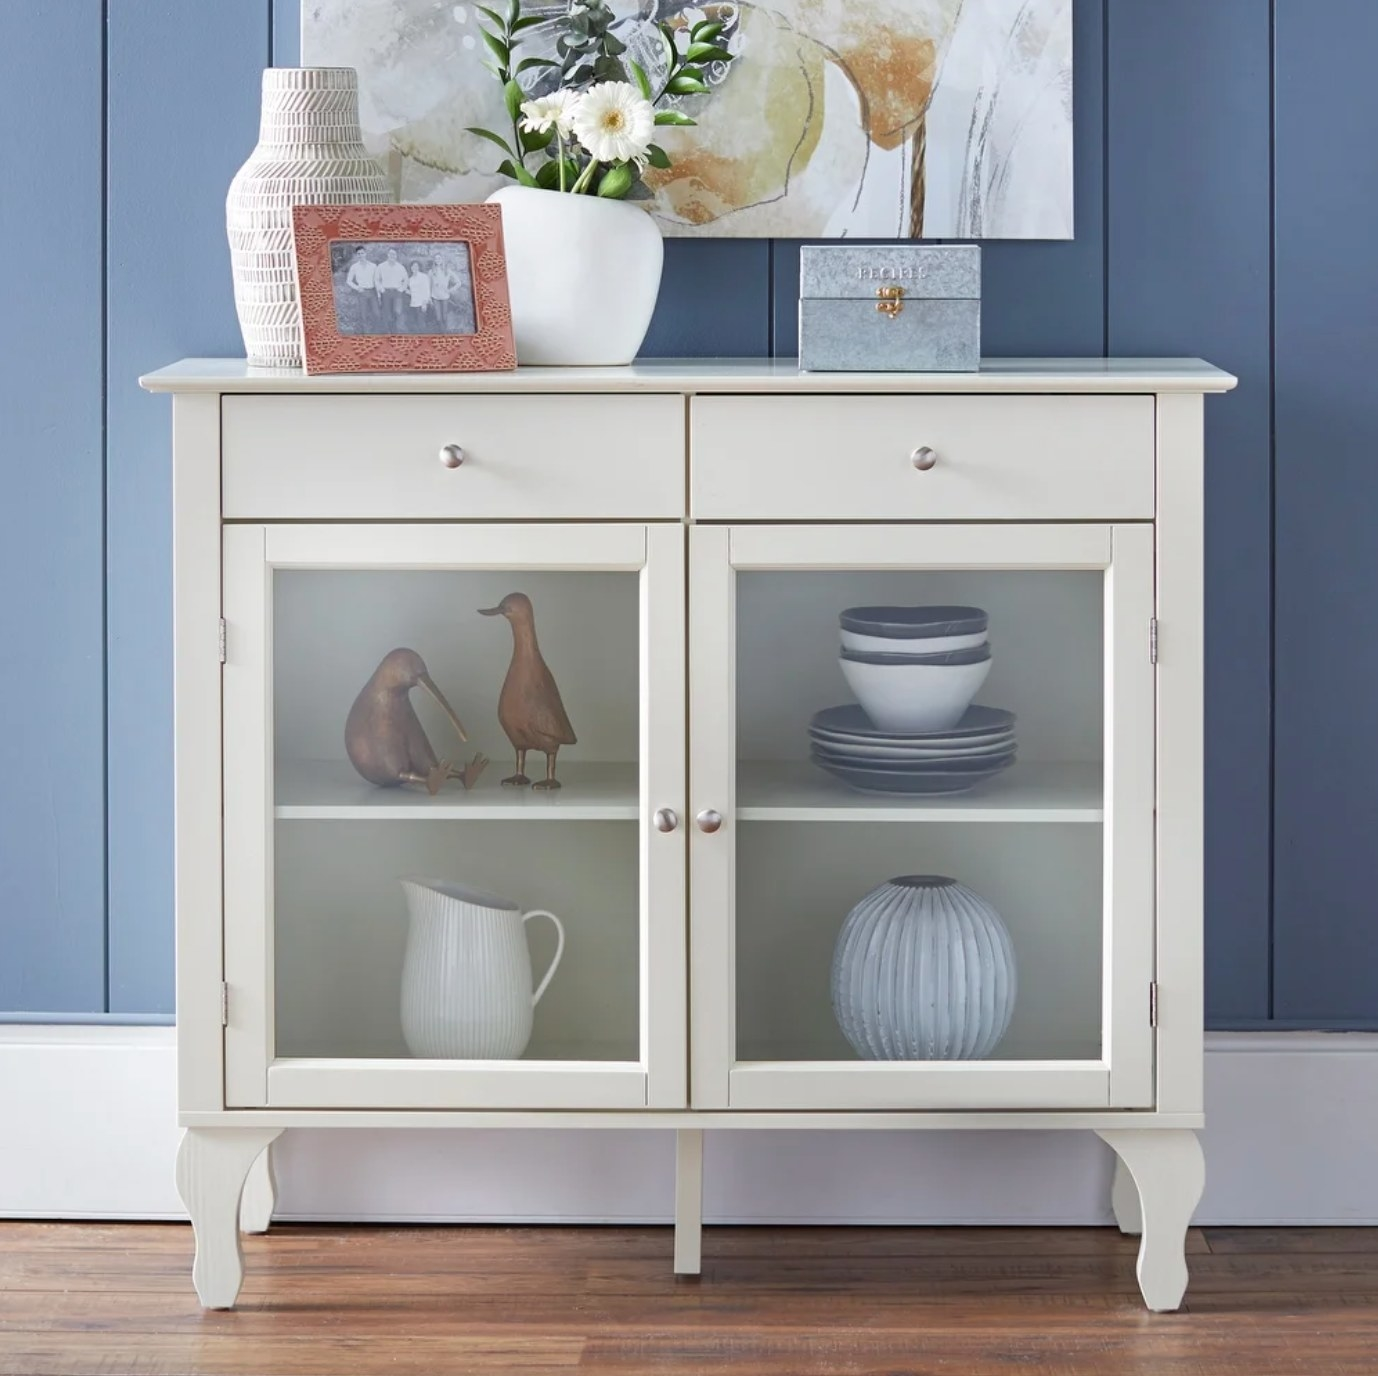 The glass cabinet in white